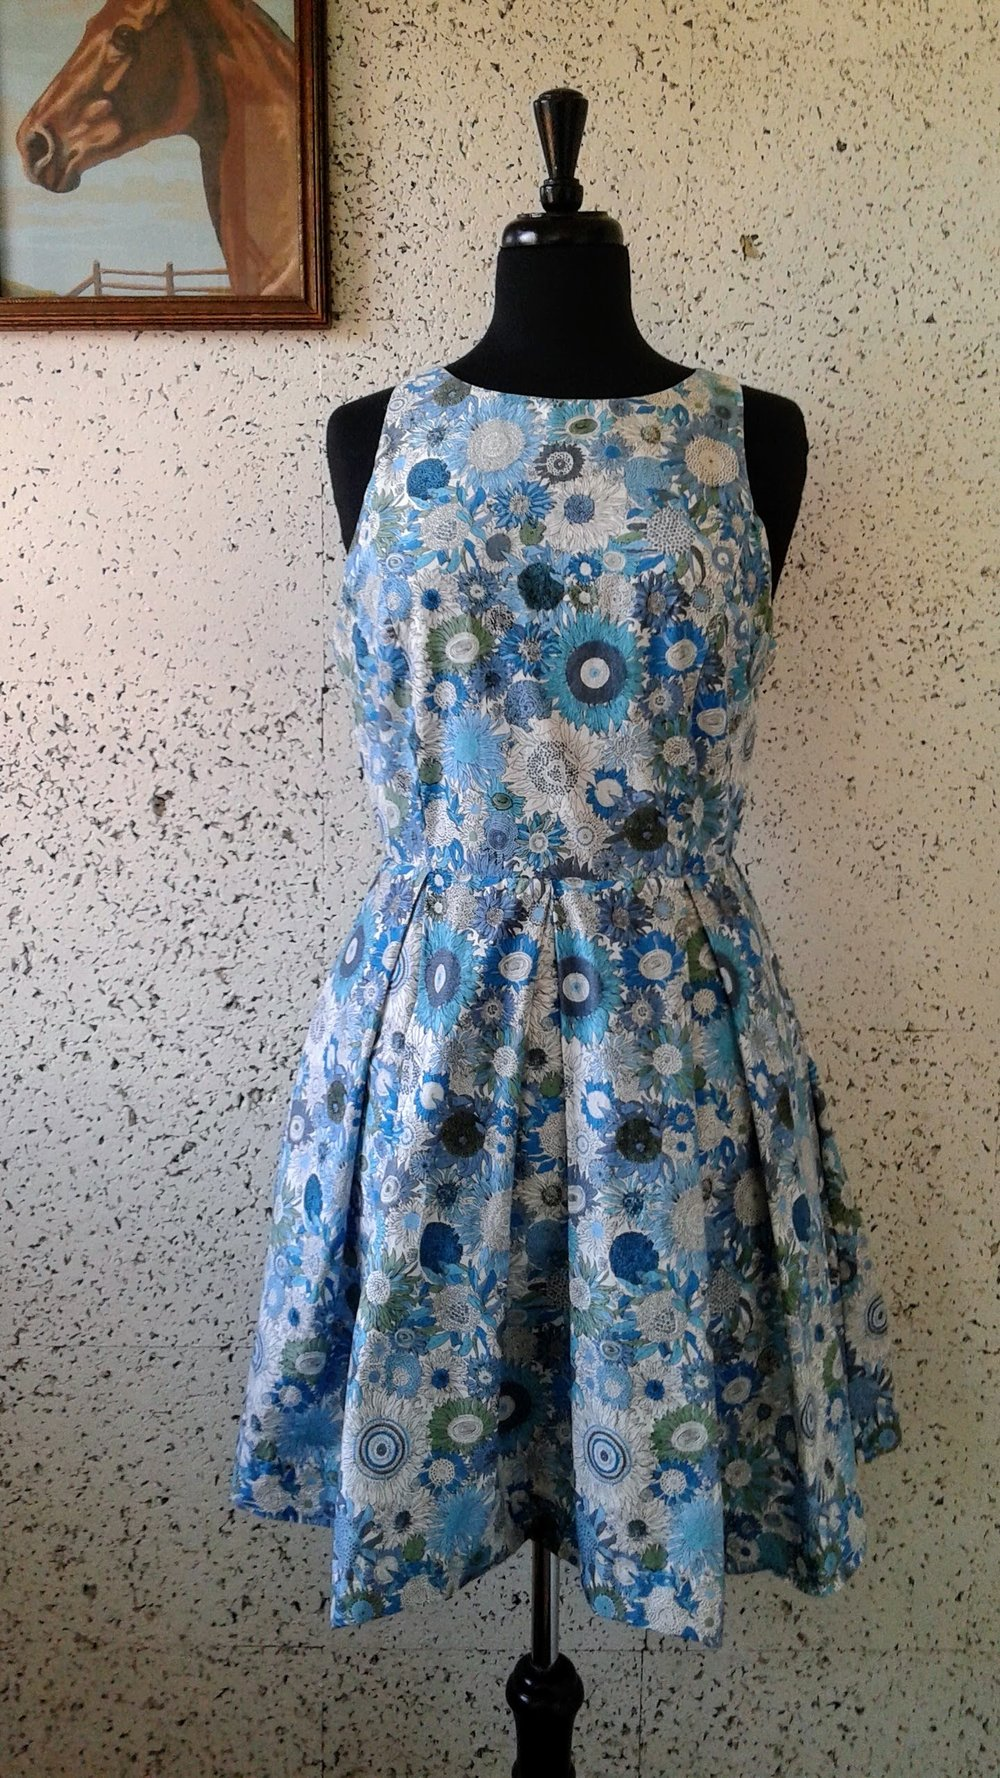 Lord & Taylor dress; Size 8, $36